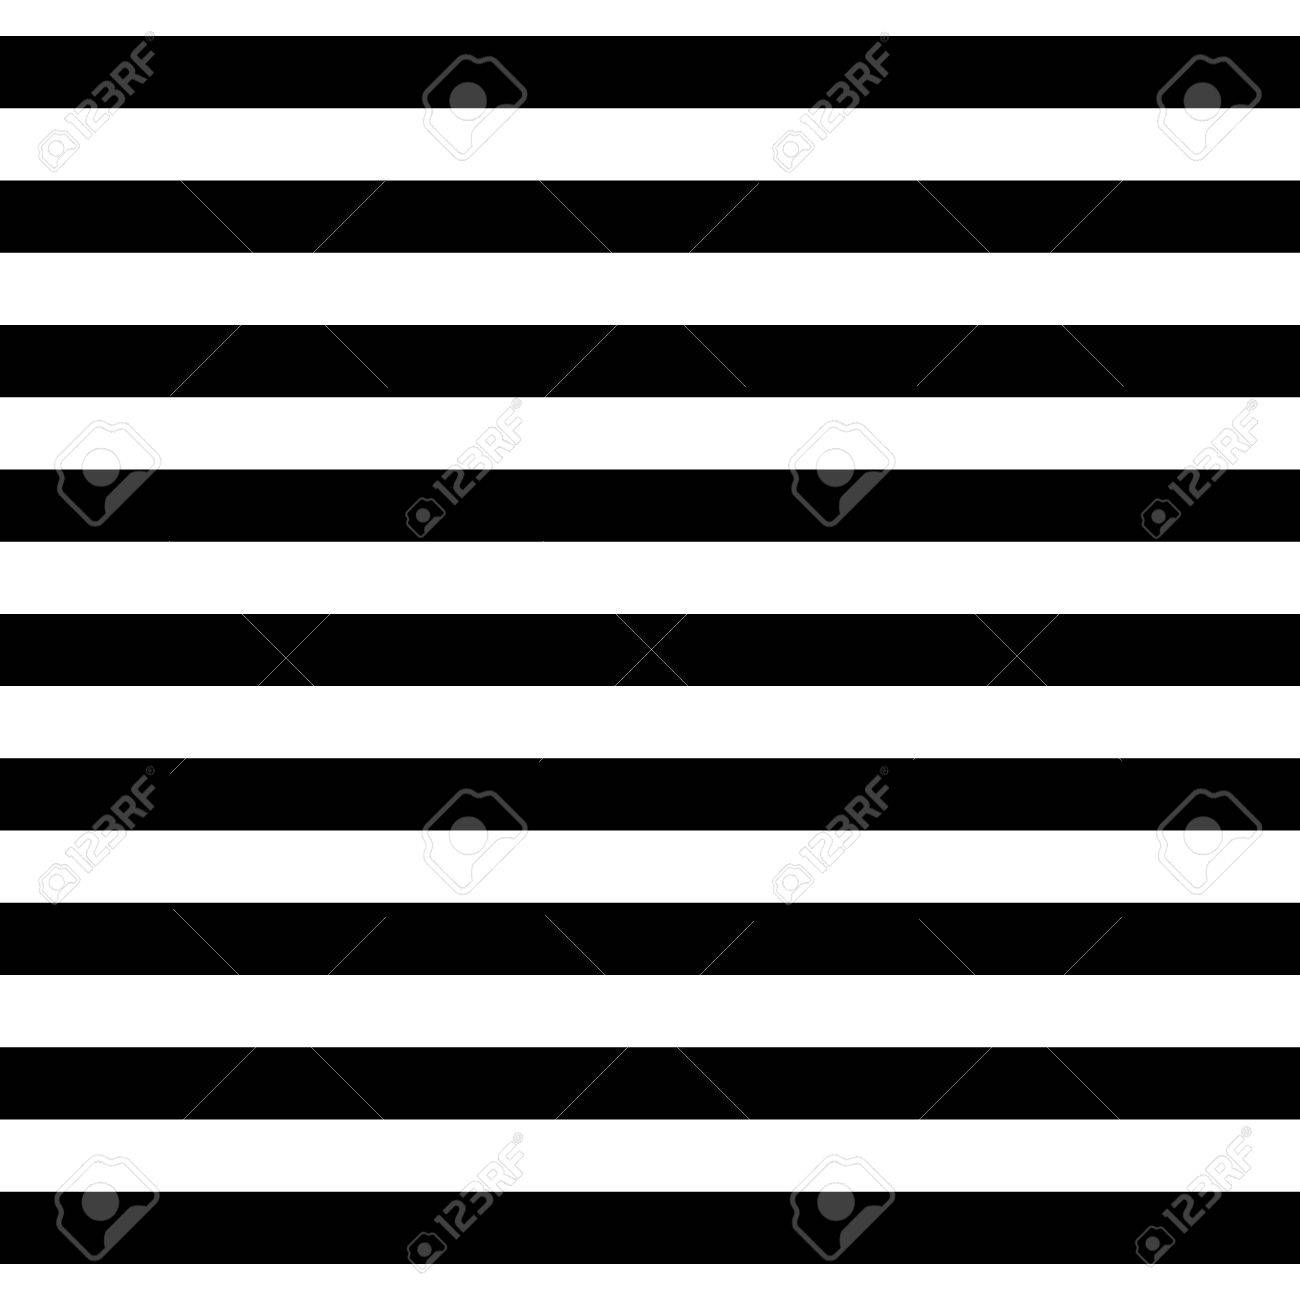 Tile Pattern With Black And White Stripes Background Royalty Free ...